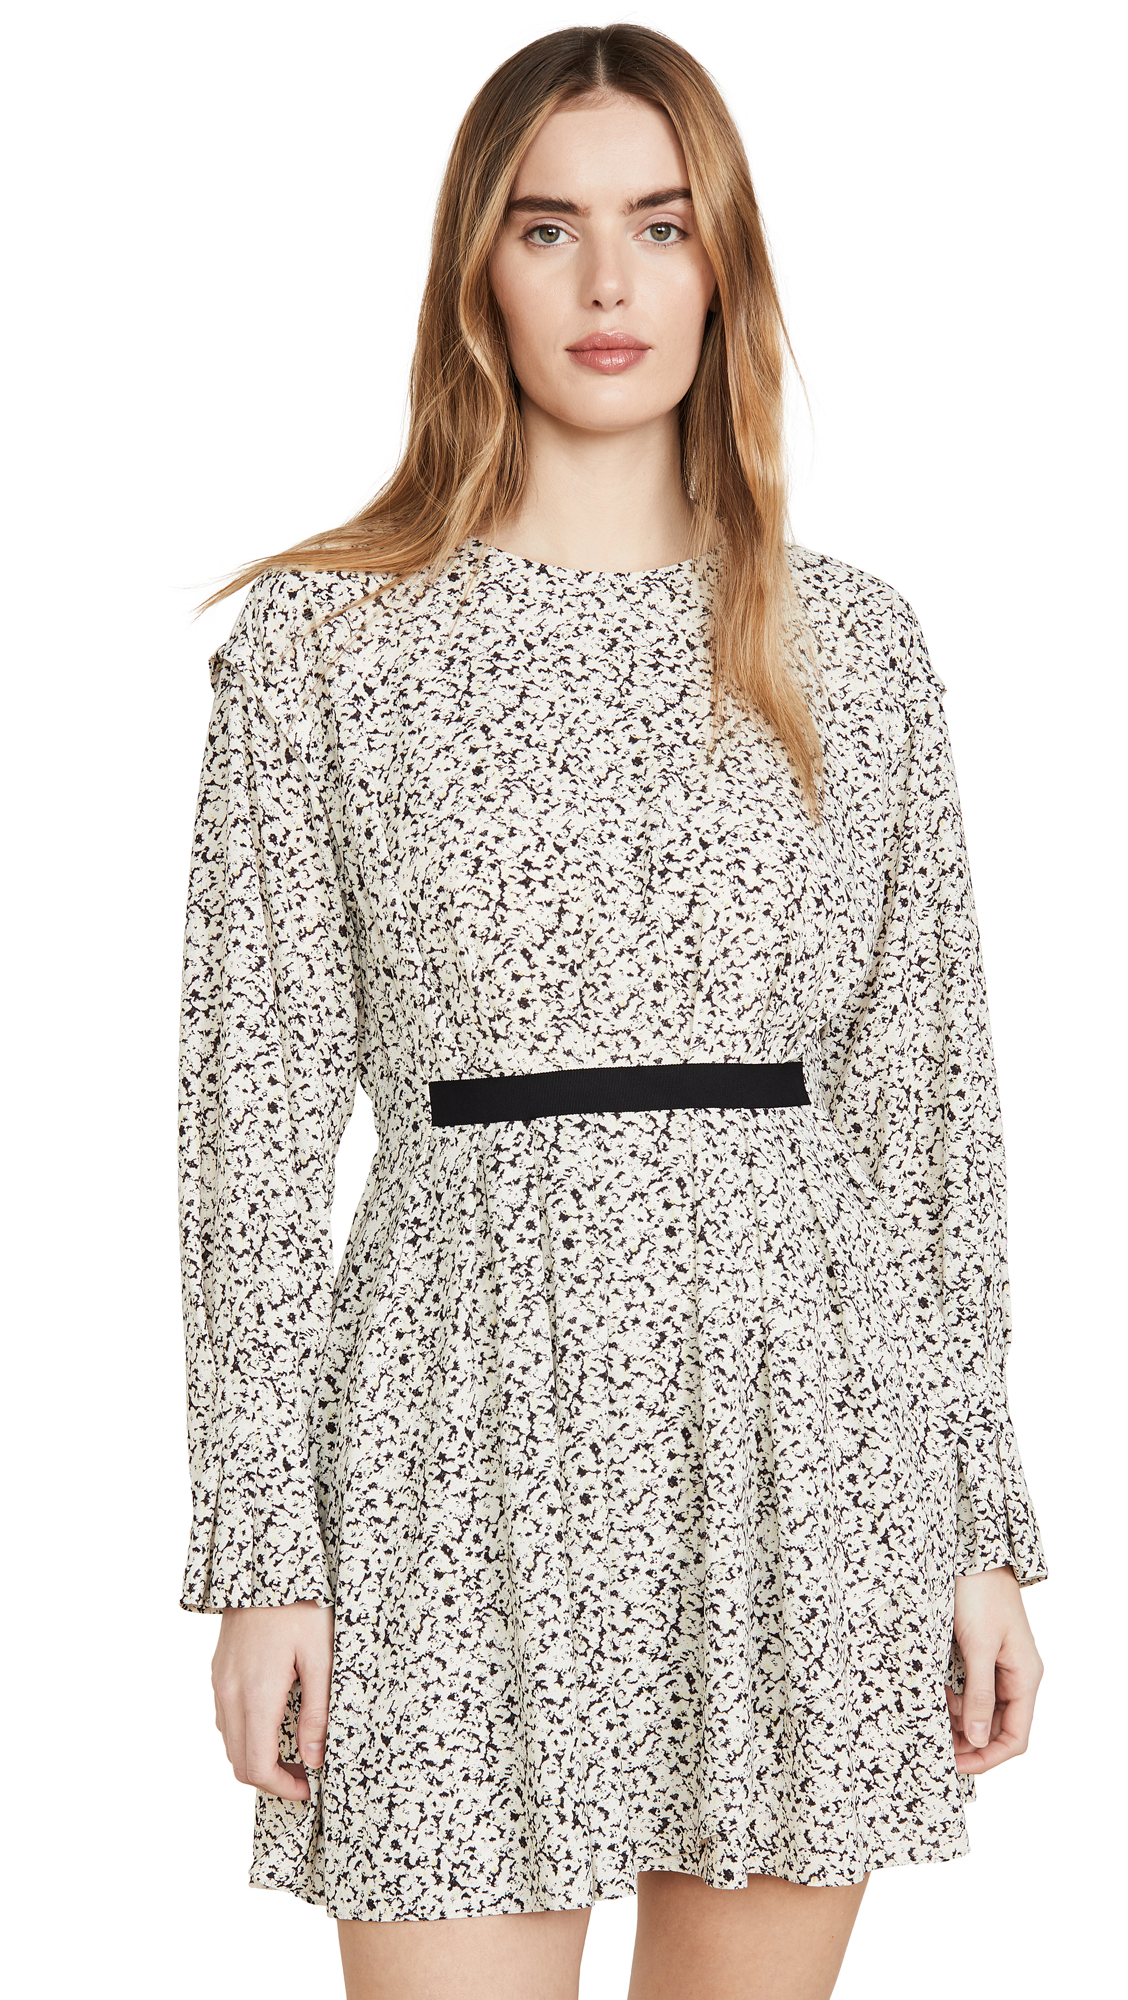 Jason Wu Inverse Floral Long Sleeve Dress - 50% Off Sale